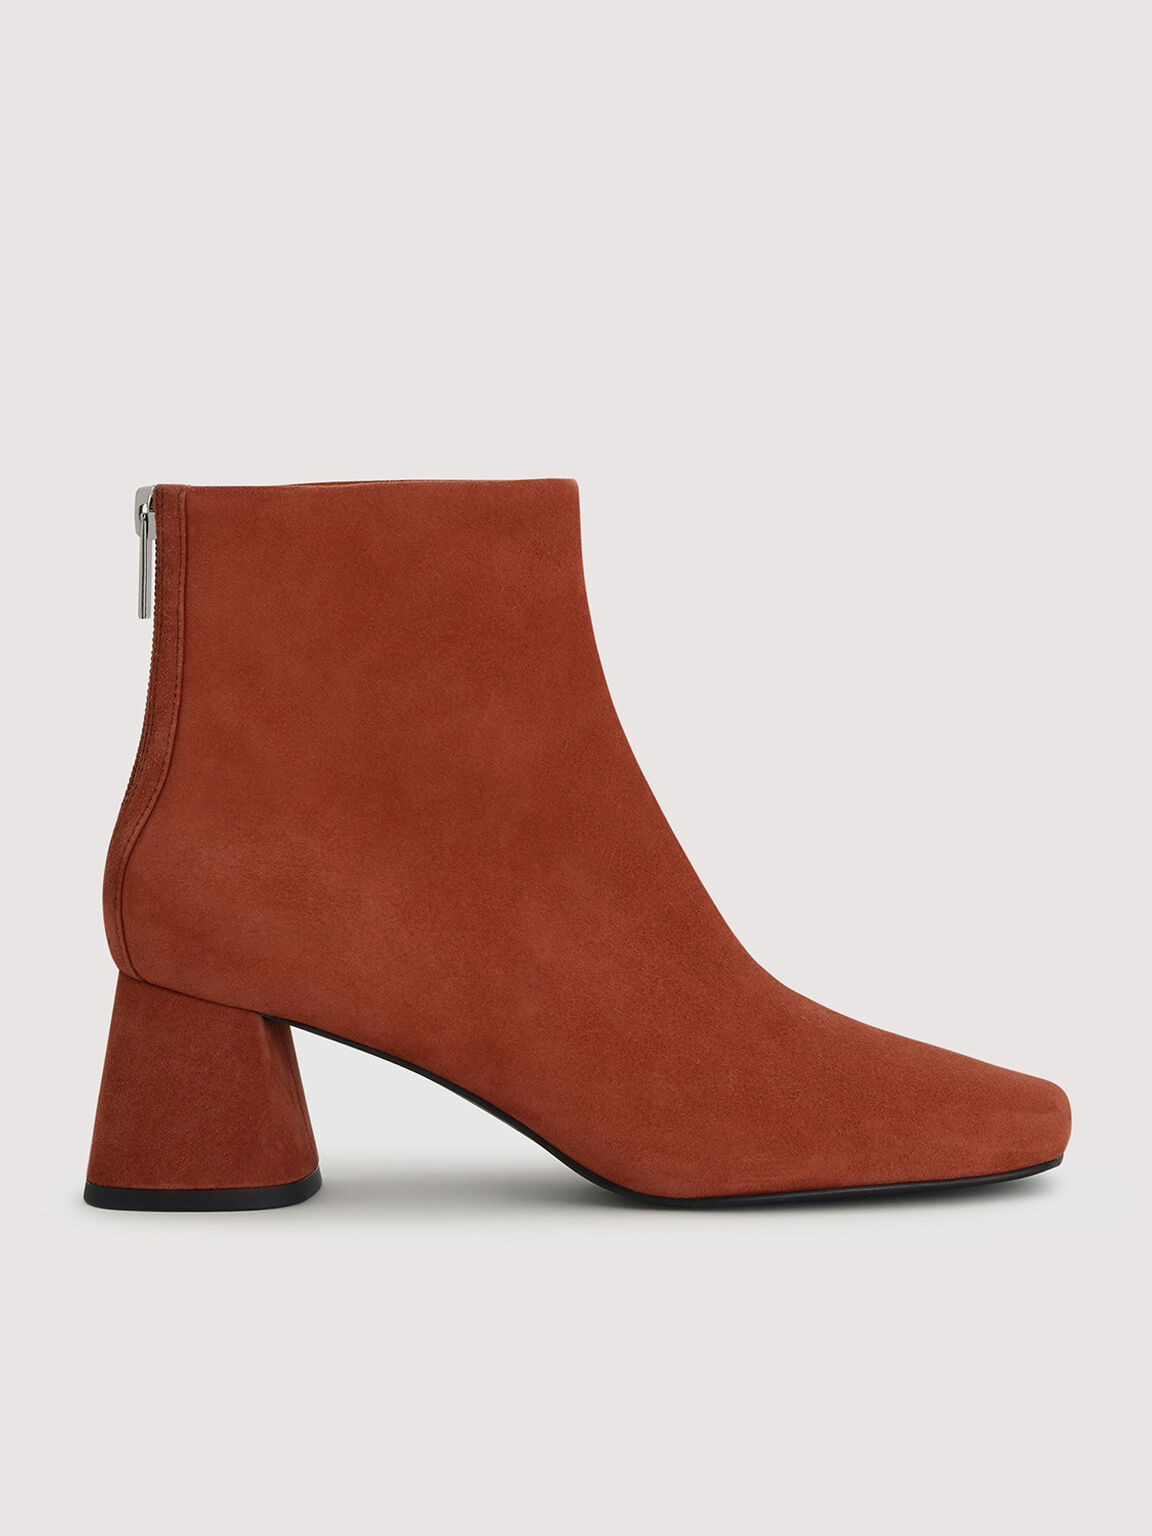 Suede Ankle Boots, Brick, hi-res